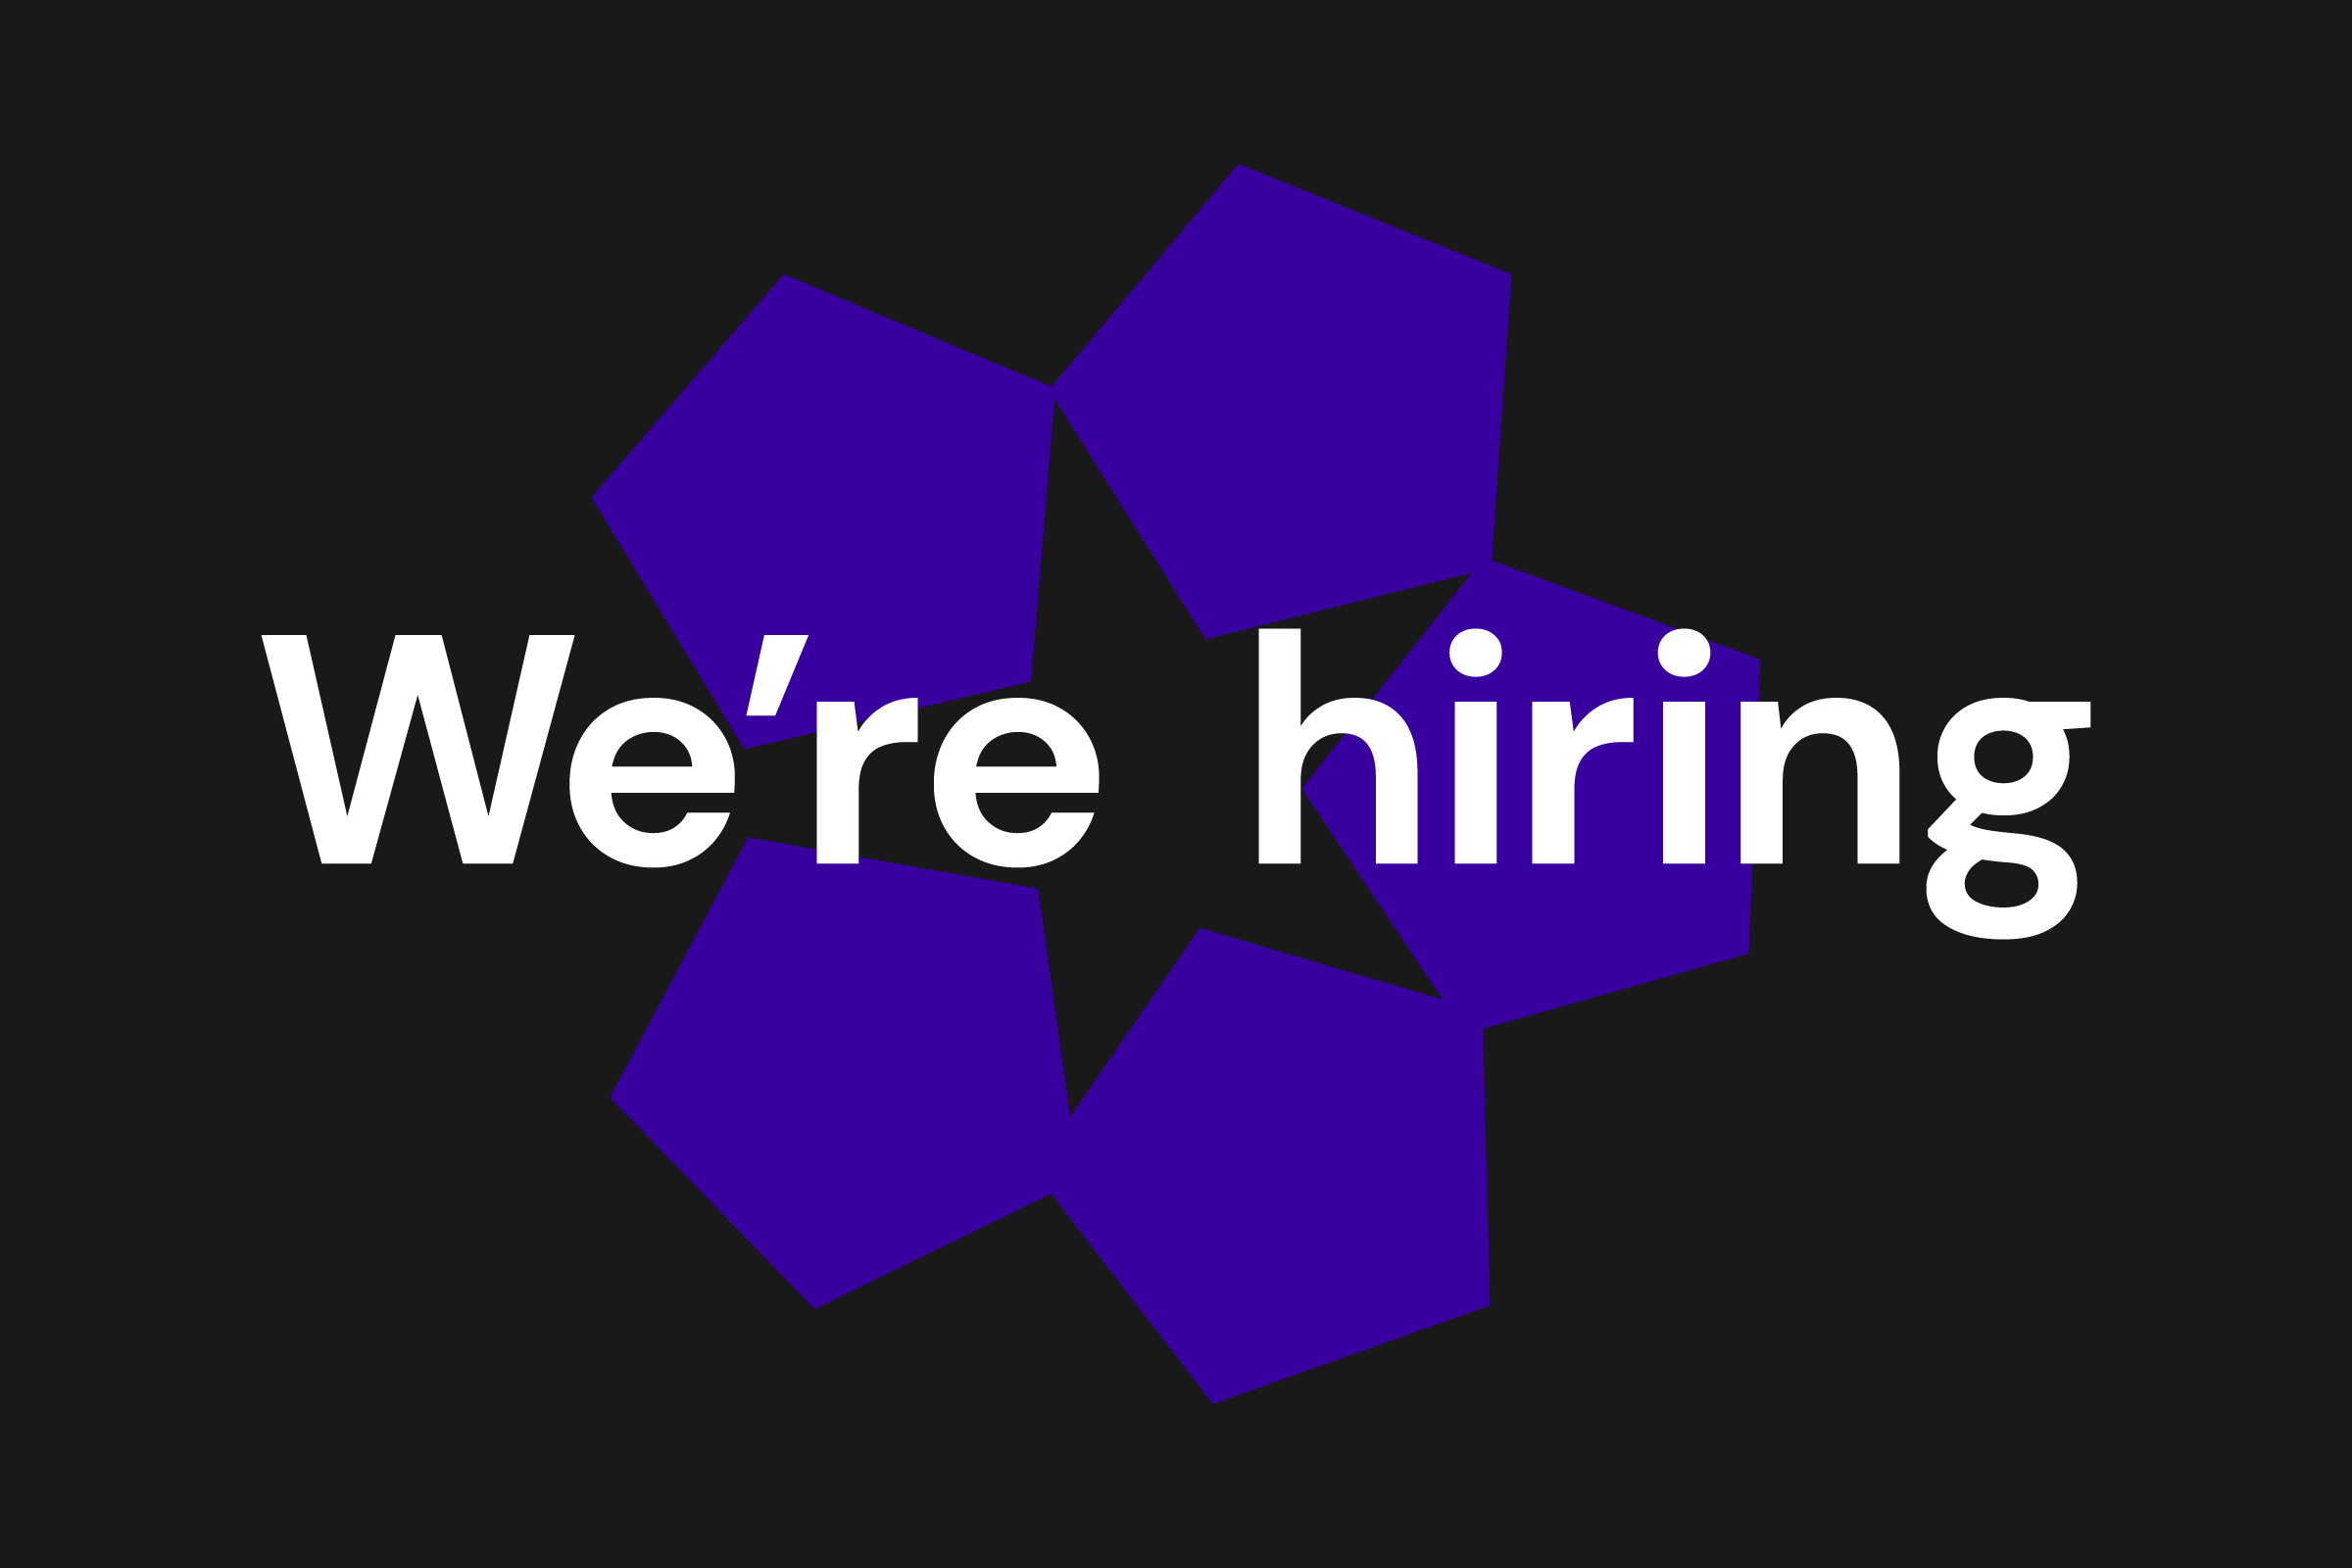 Five are hiring product and engineering roles